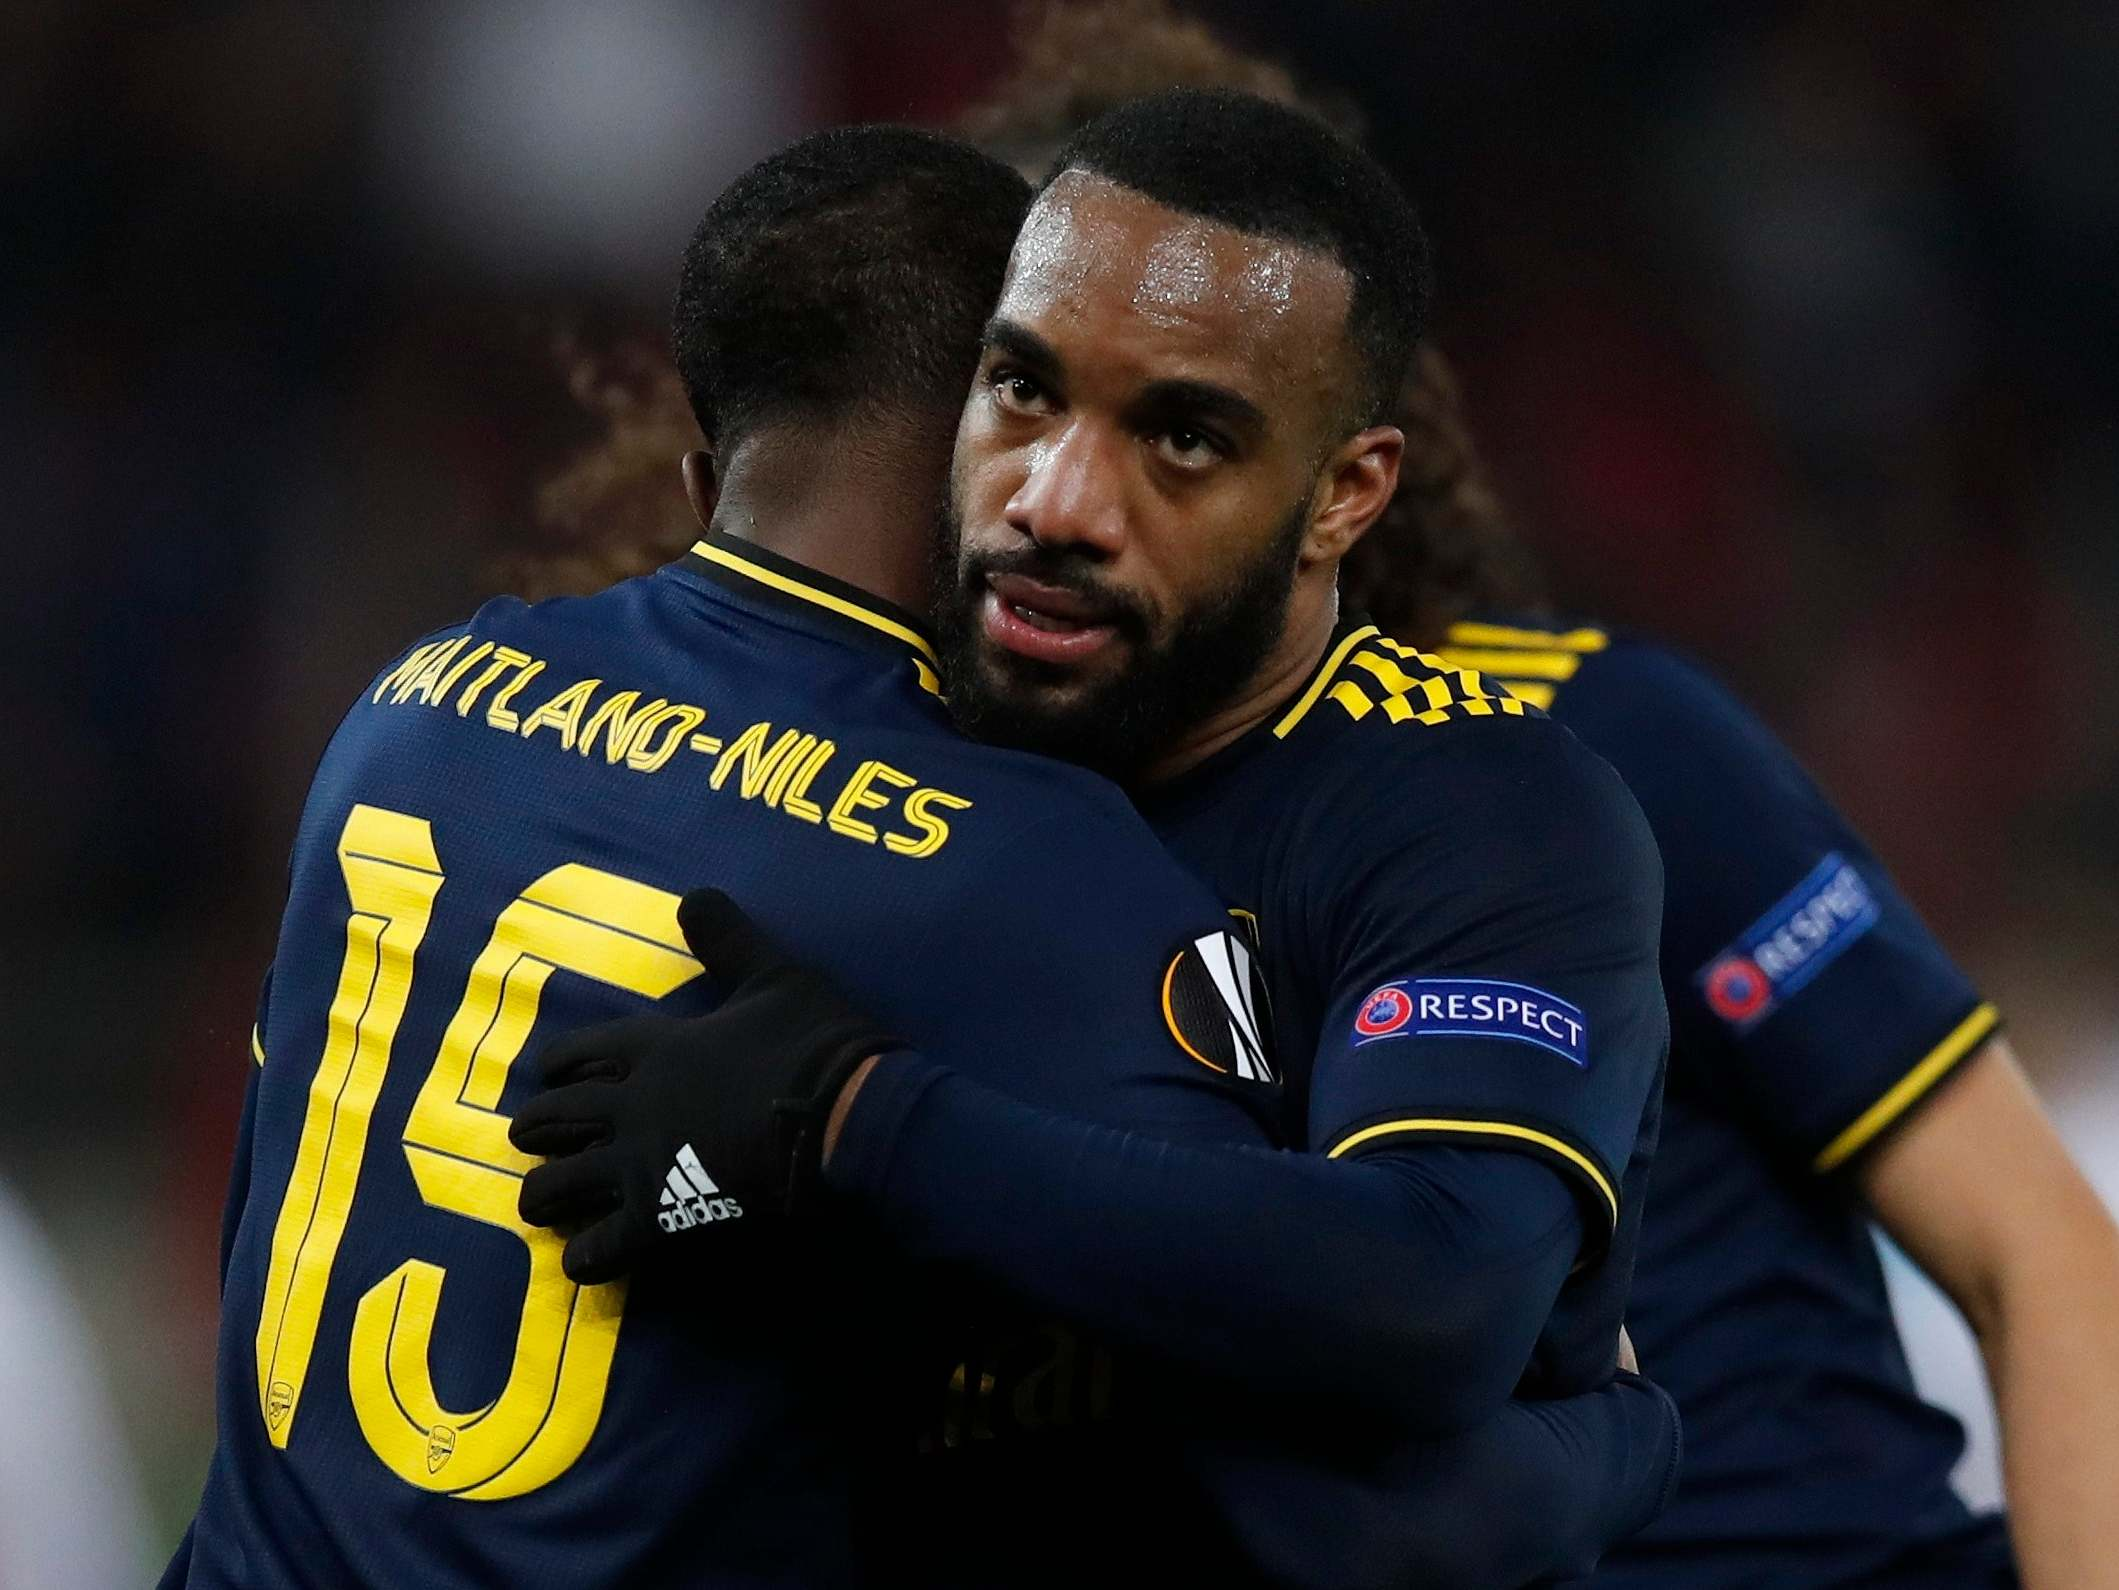 Olympiacos vs Arsenal: Mikel Arteta insists Gunners 'must enjoy defending' after third straight clean sheet